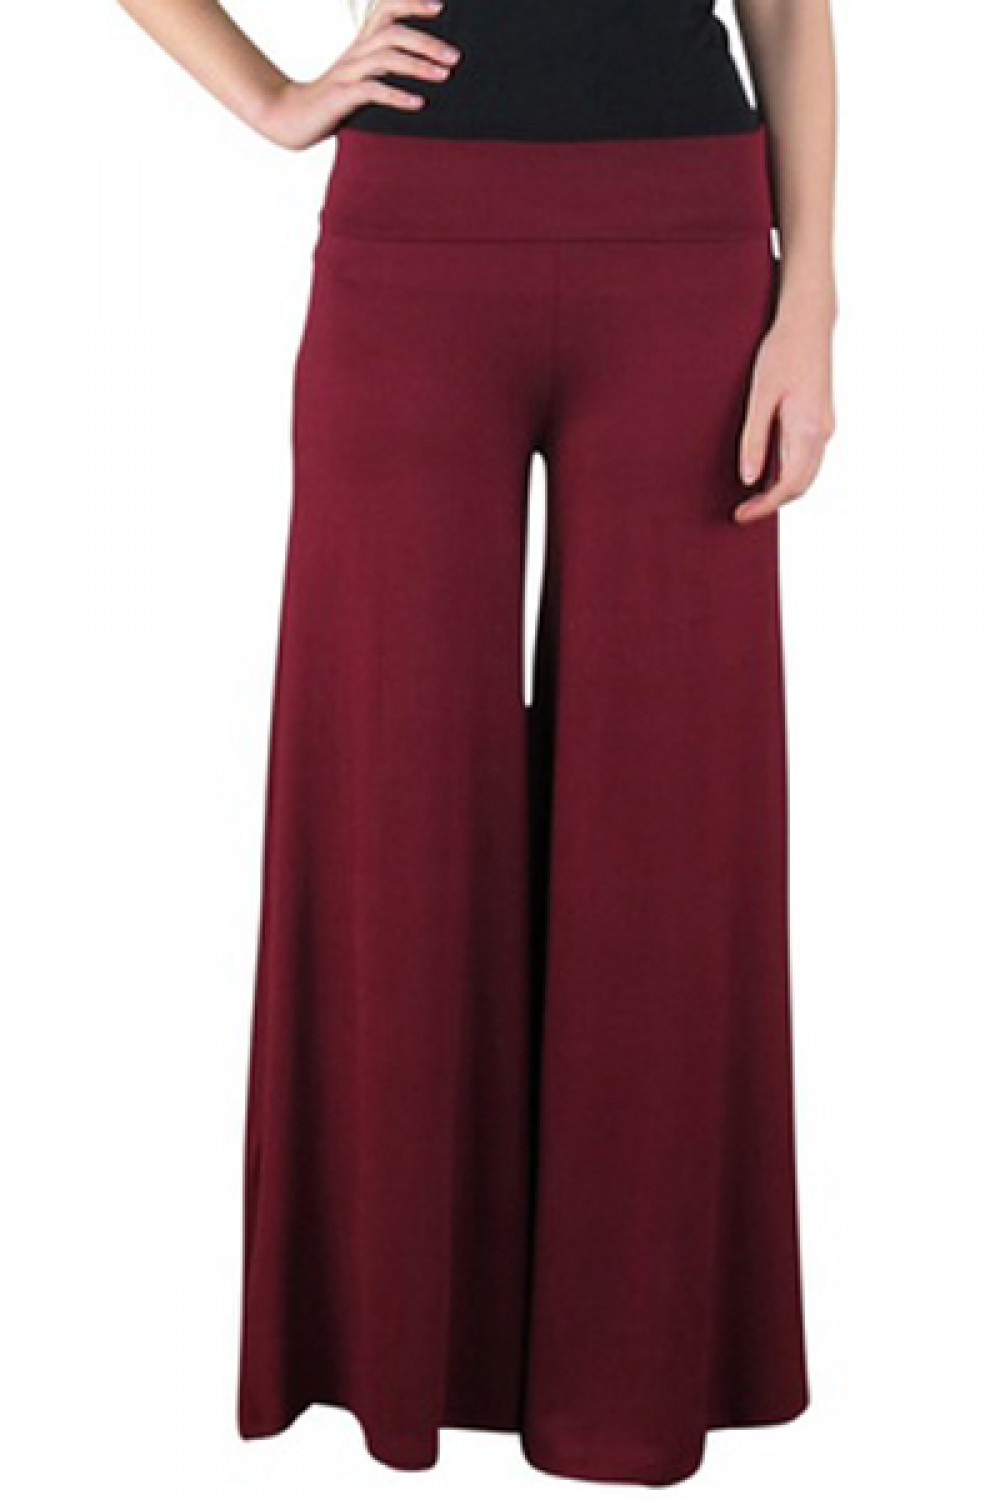 Red Palazzo Pants Wide Leg Solid Color For Lounging